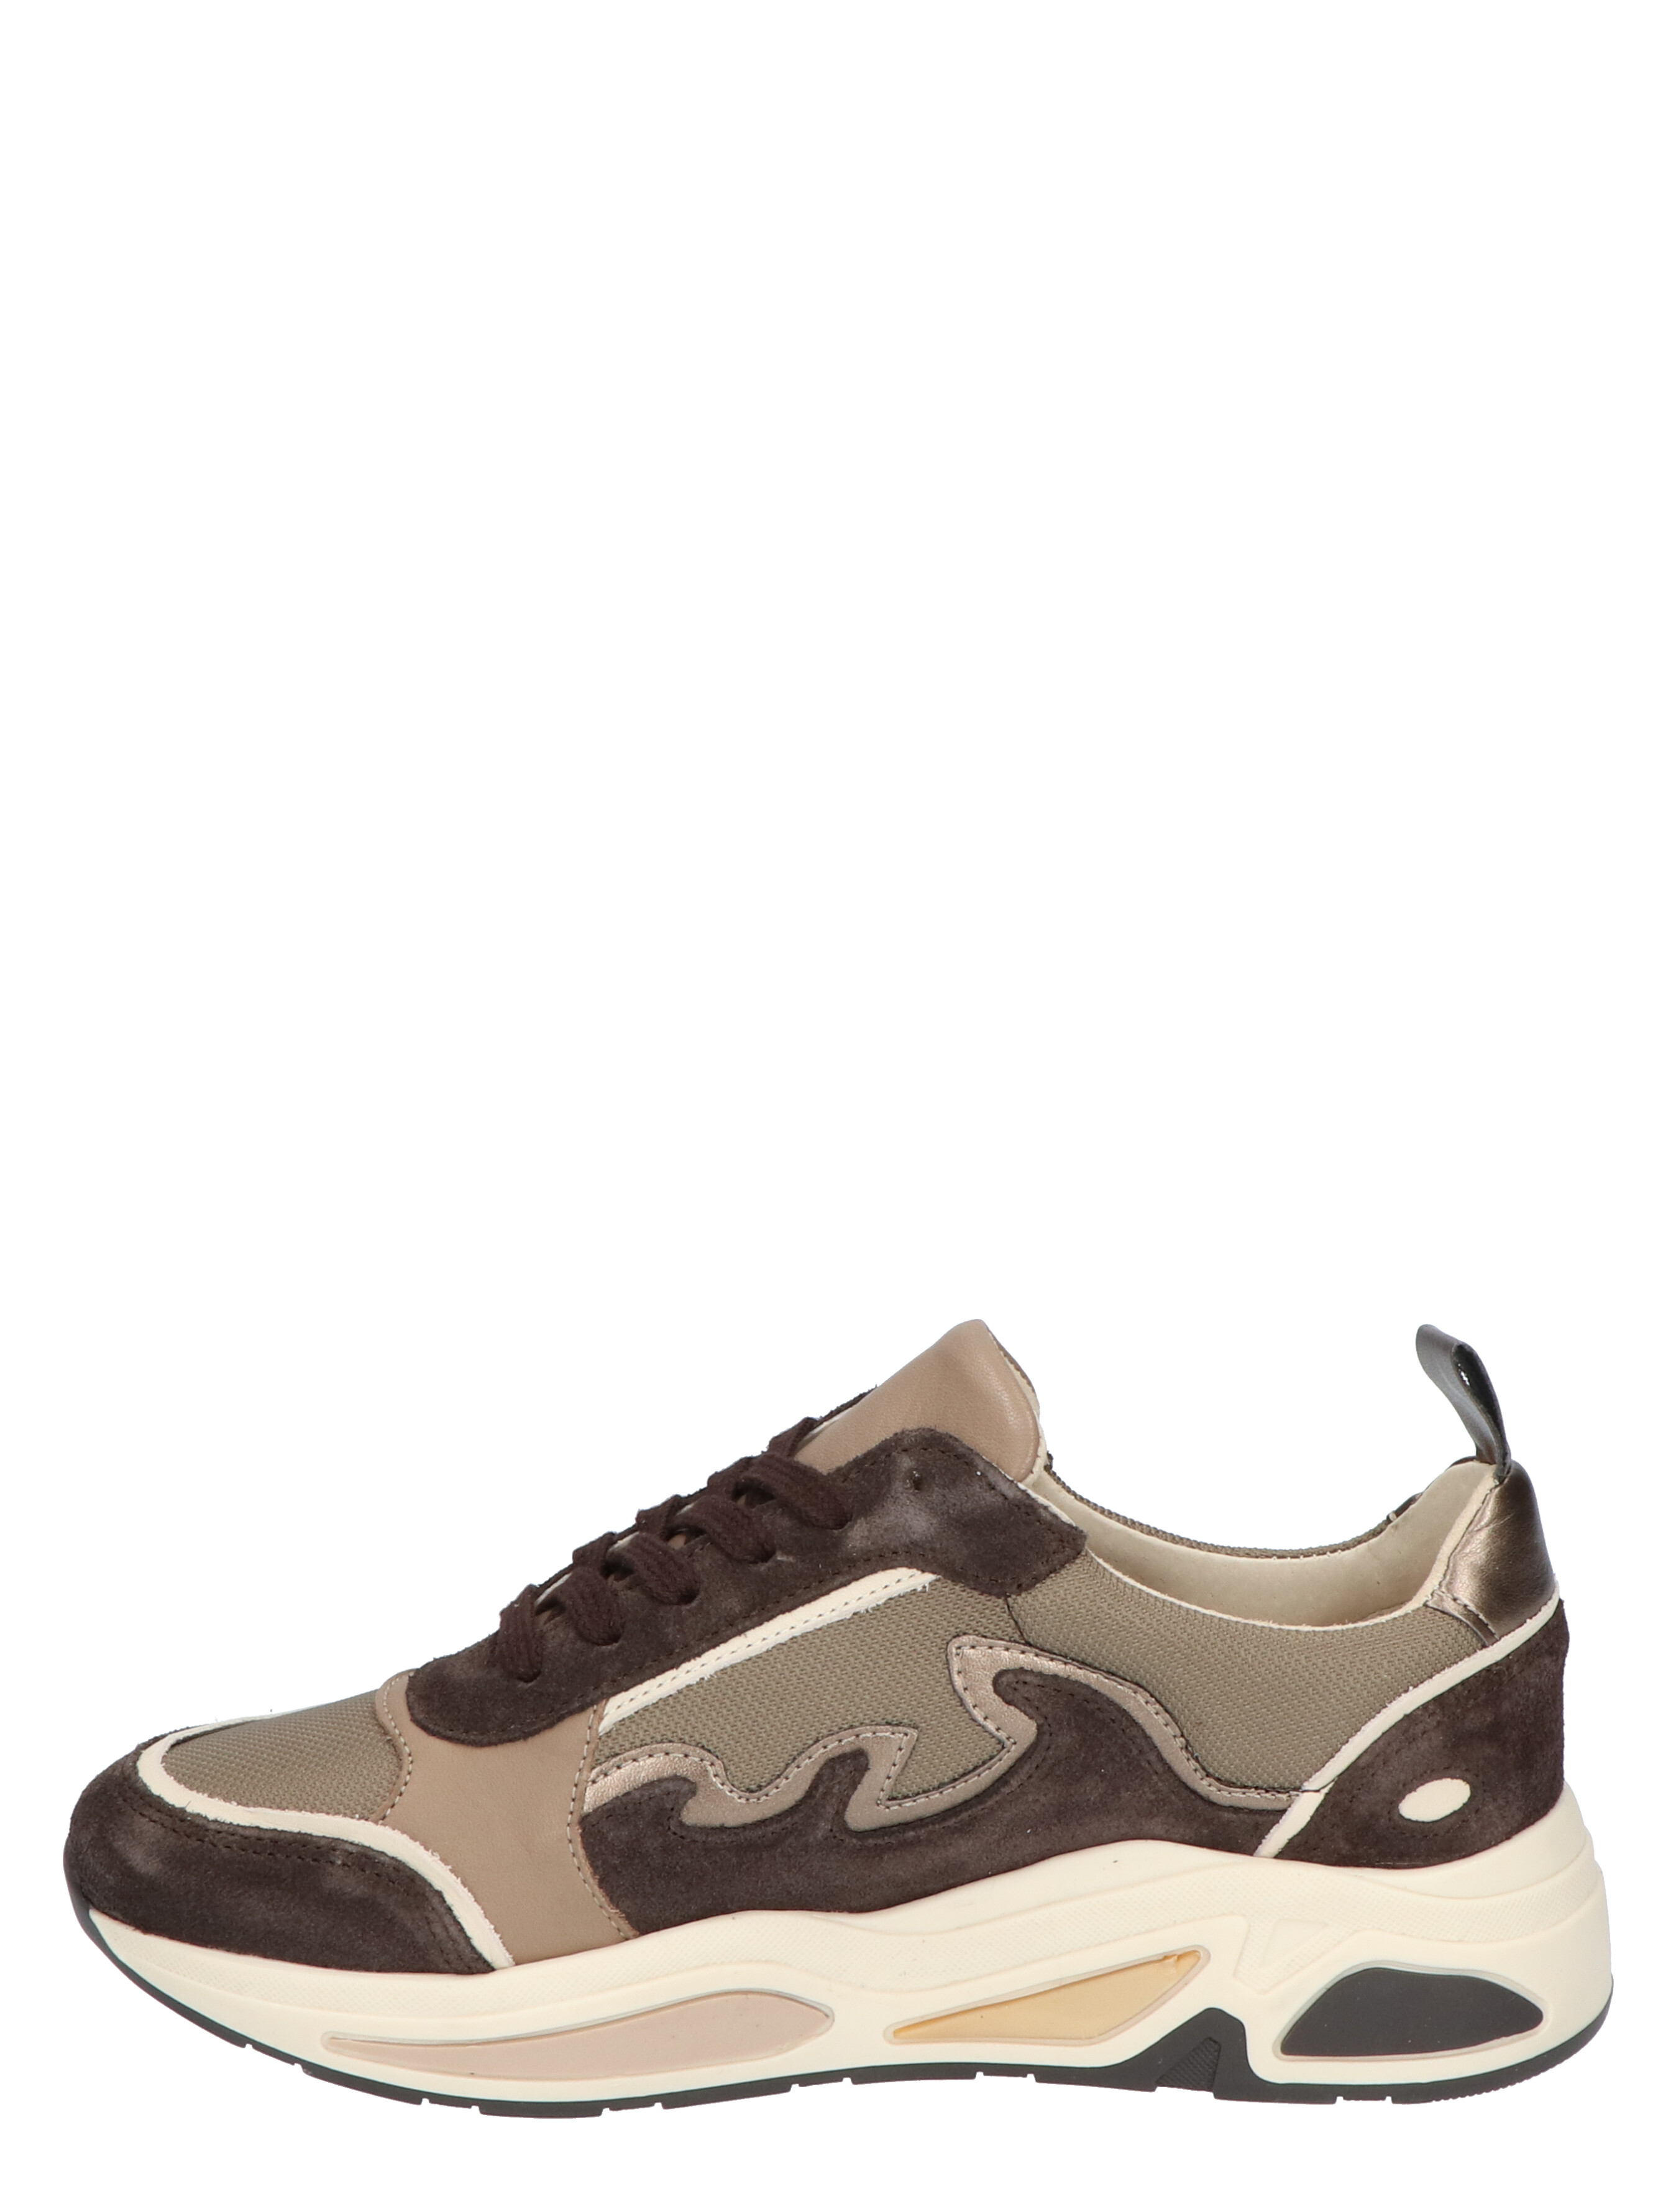 Miss Behave Maia Taupe Lage sneakers